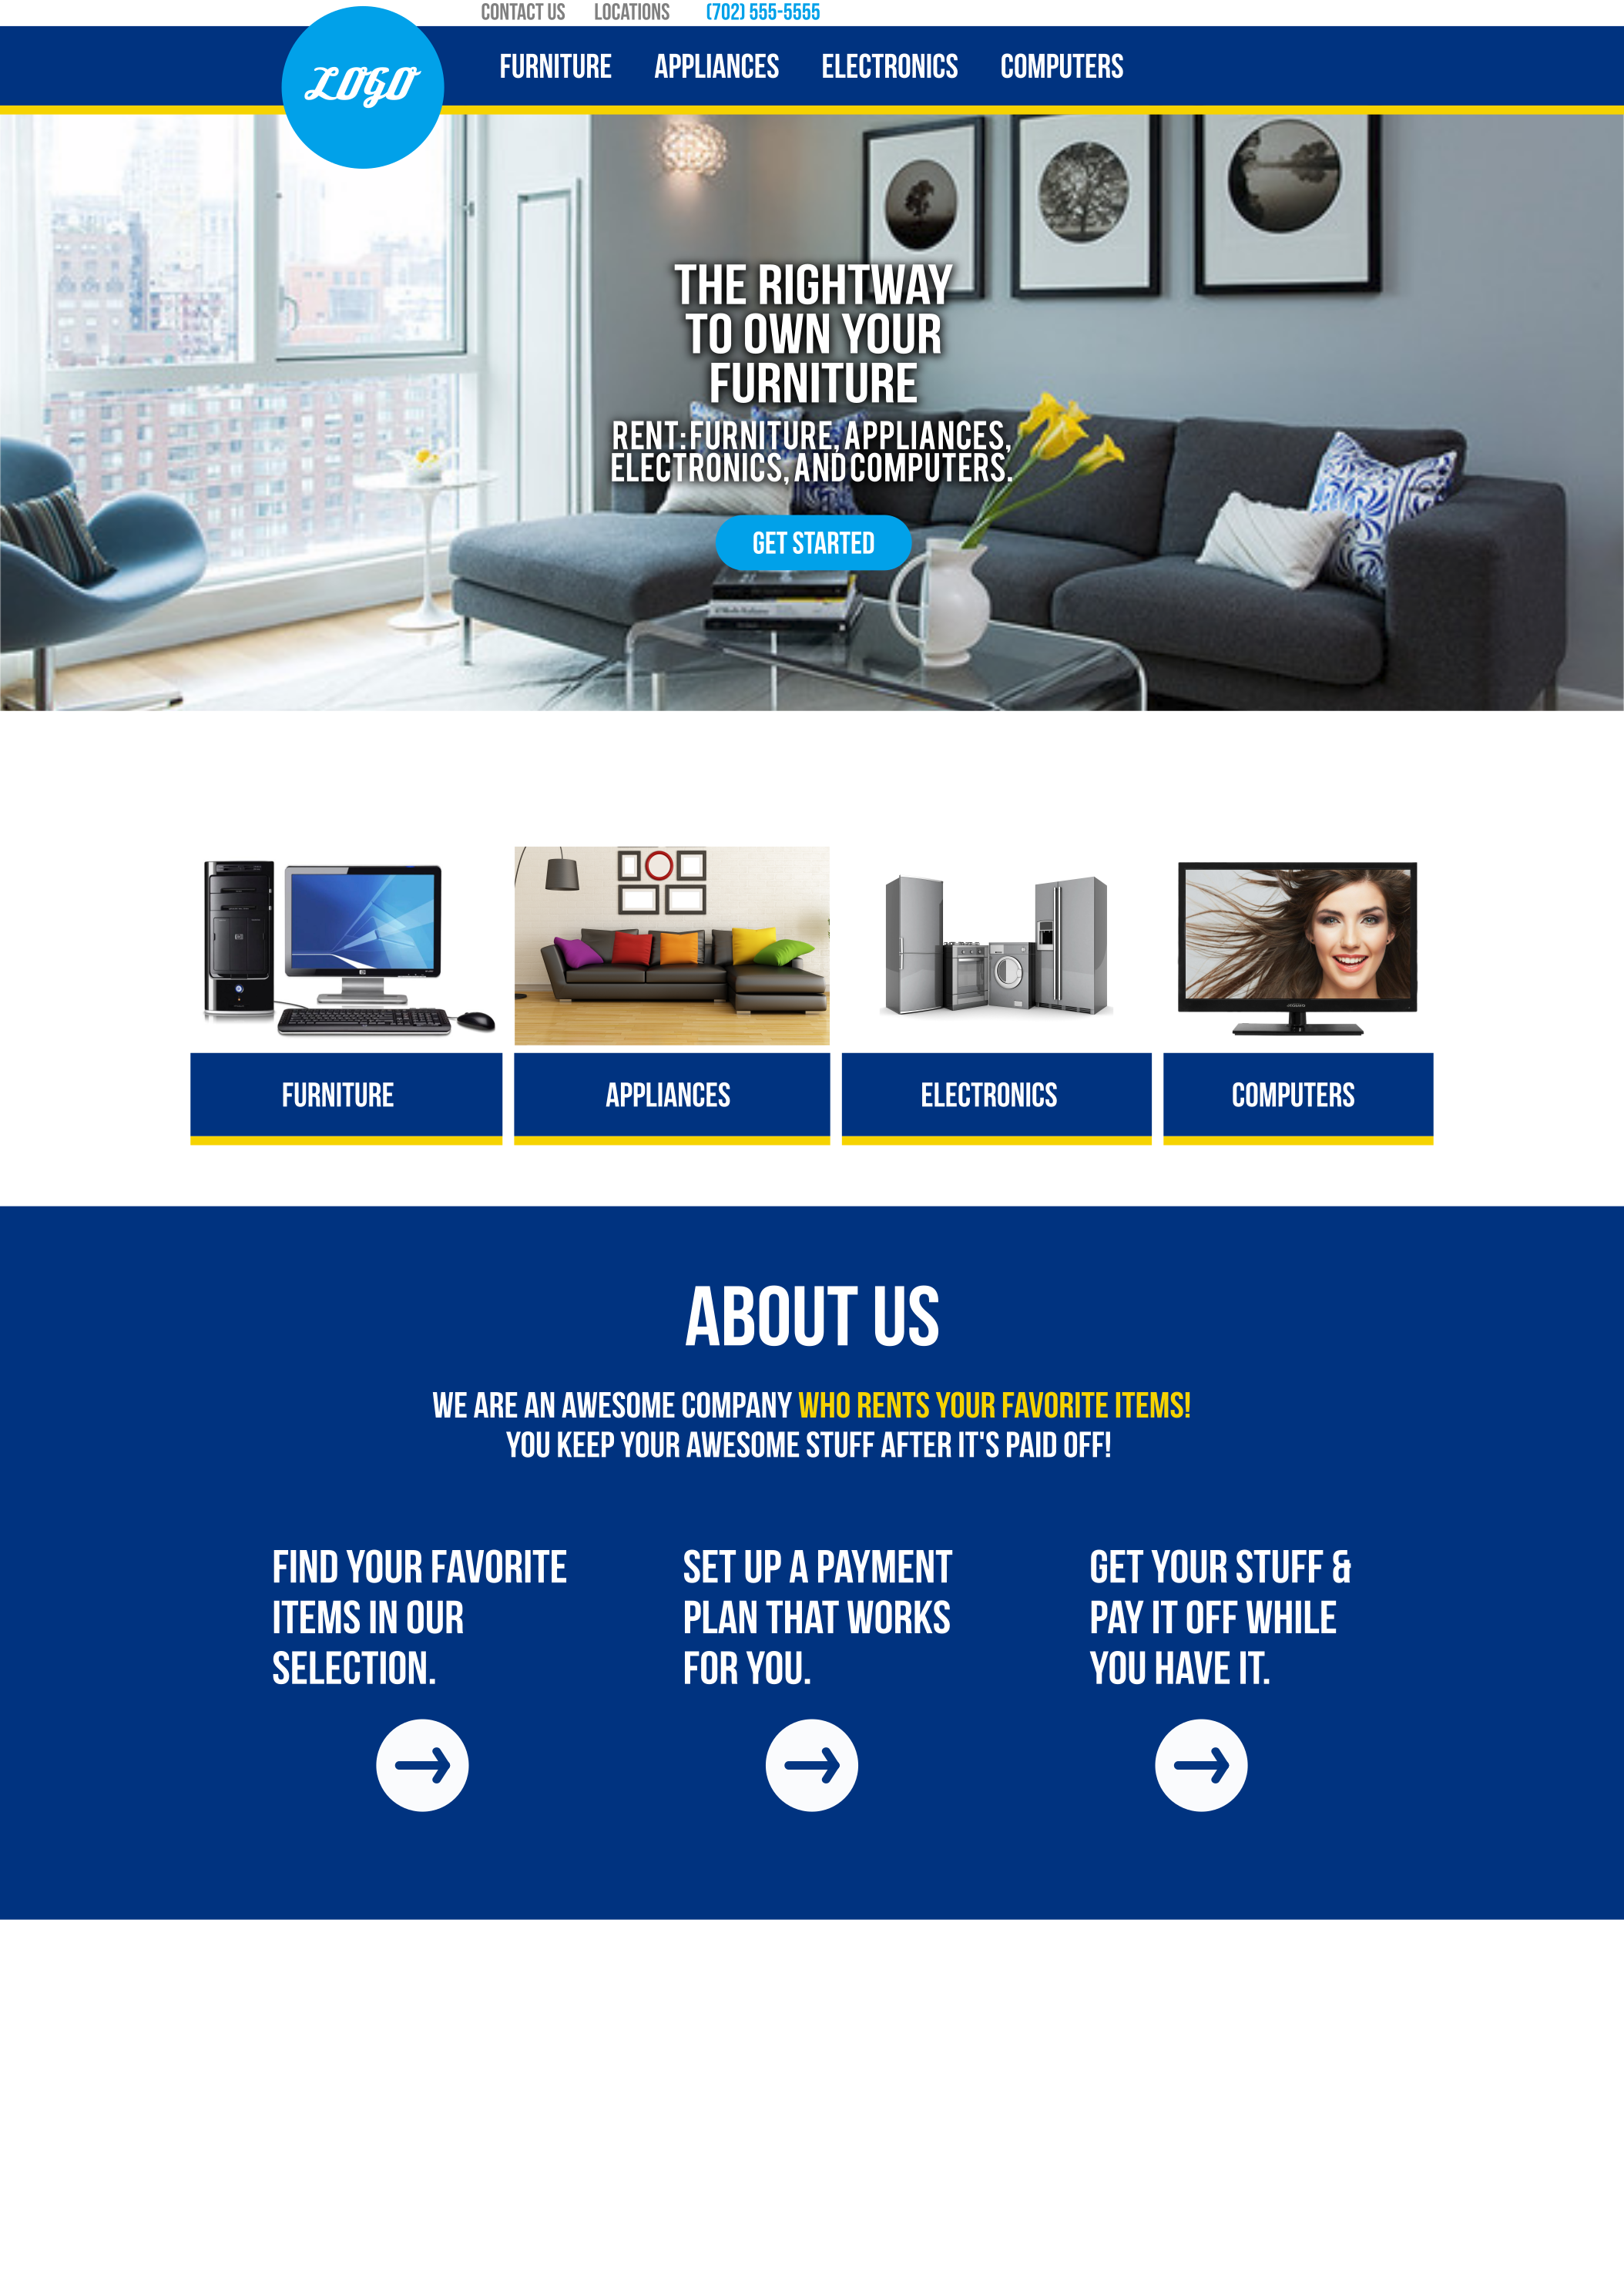 rightway furniture - website mockup1